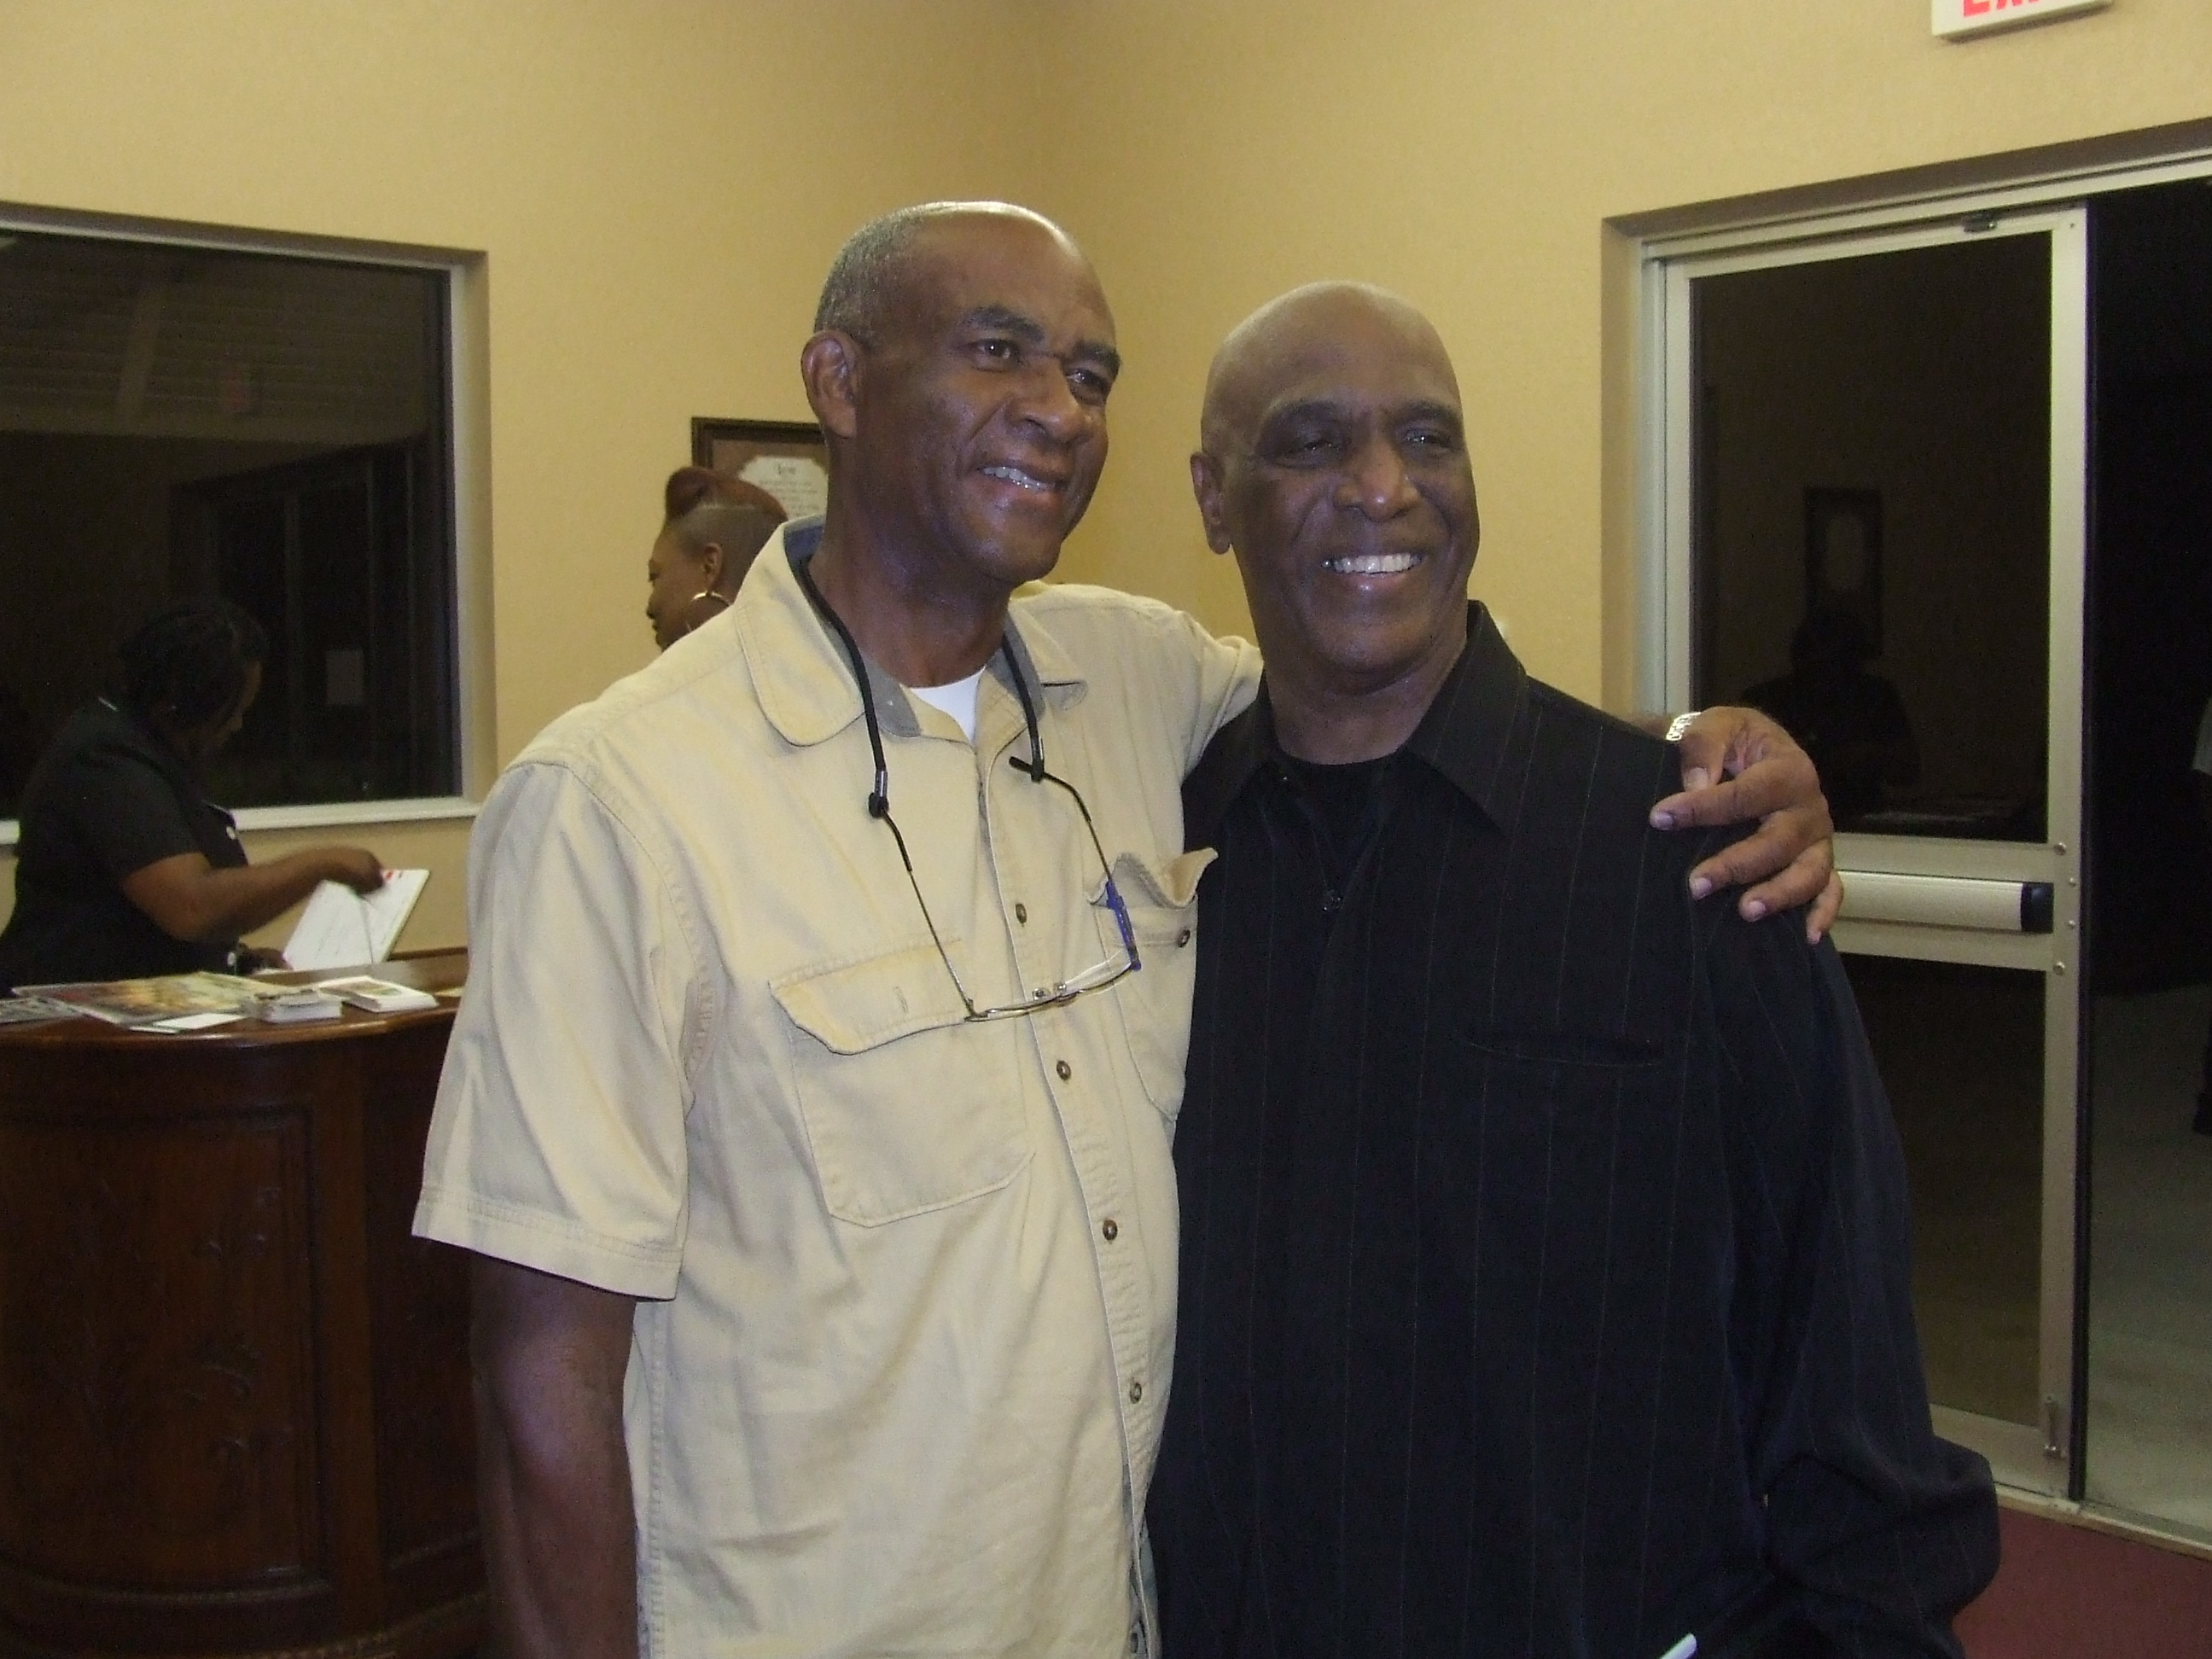 two men posing for a picture